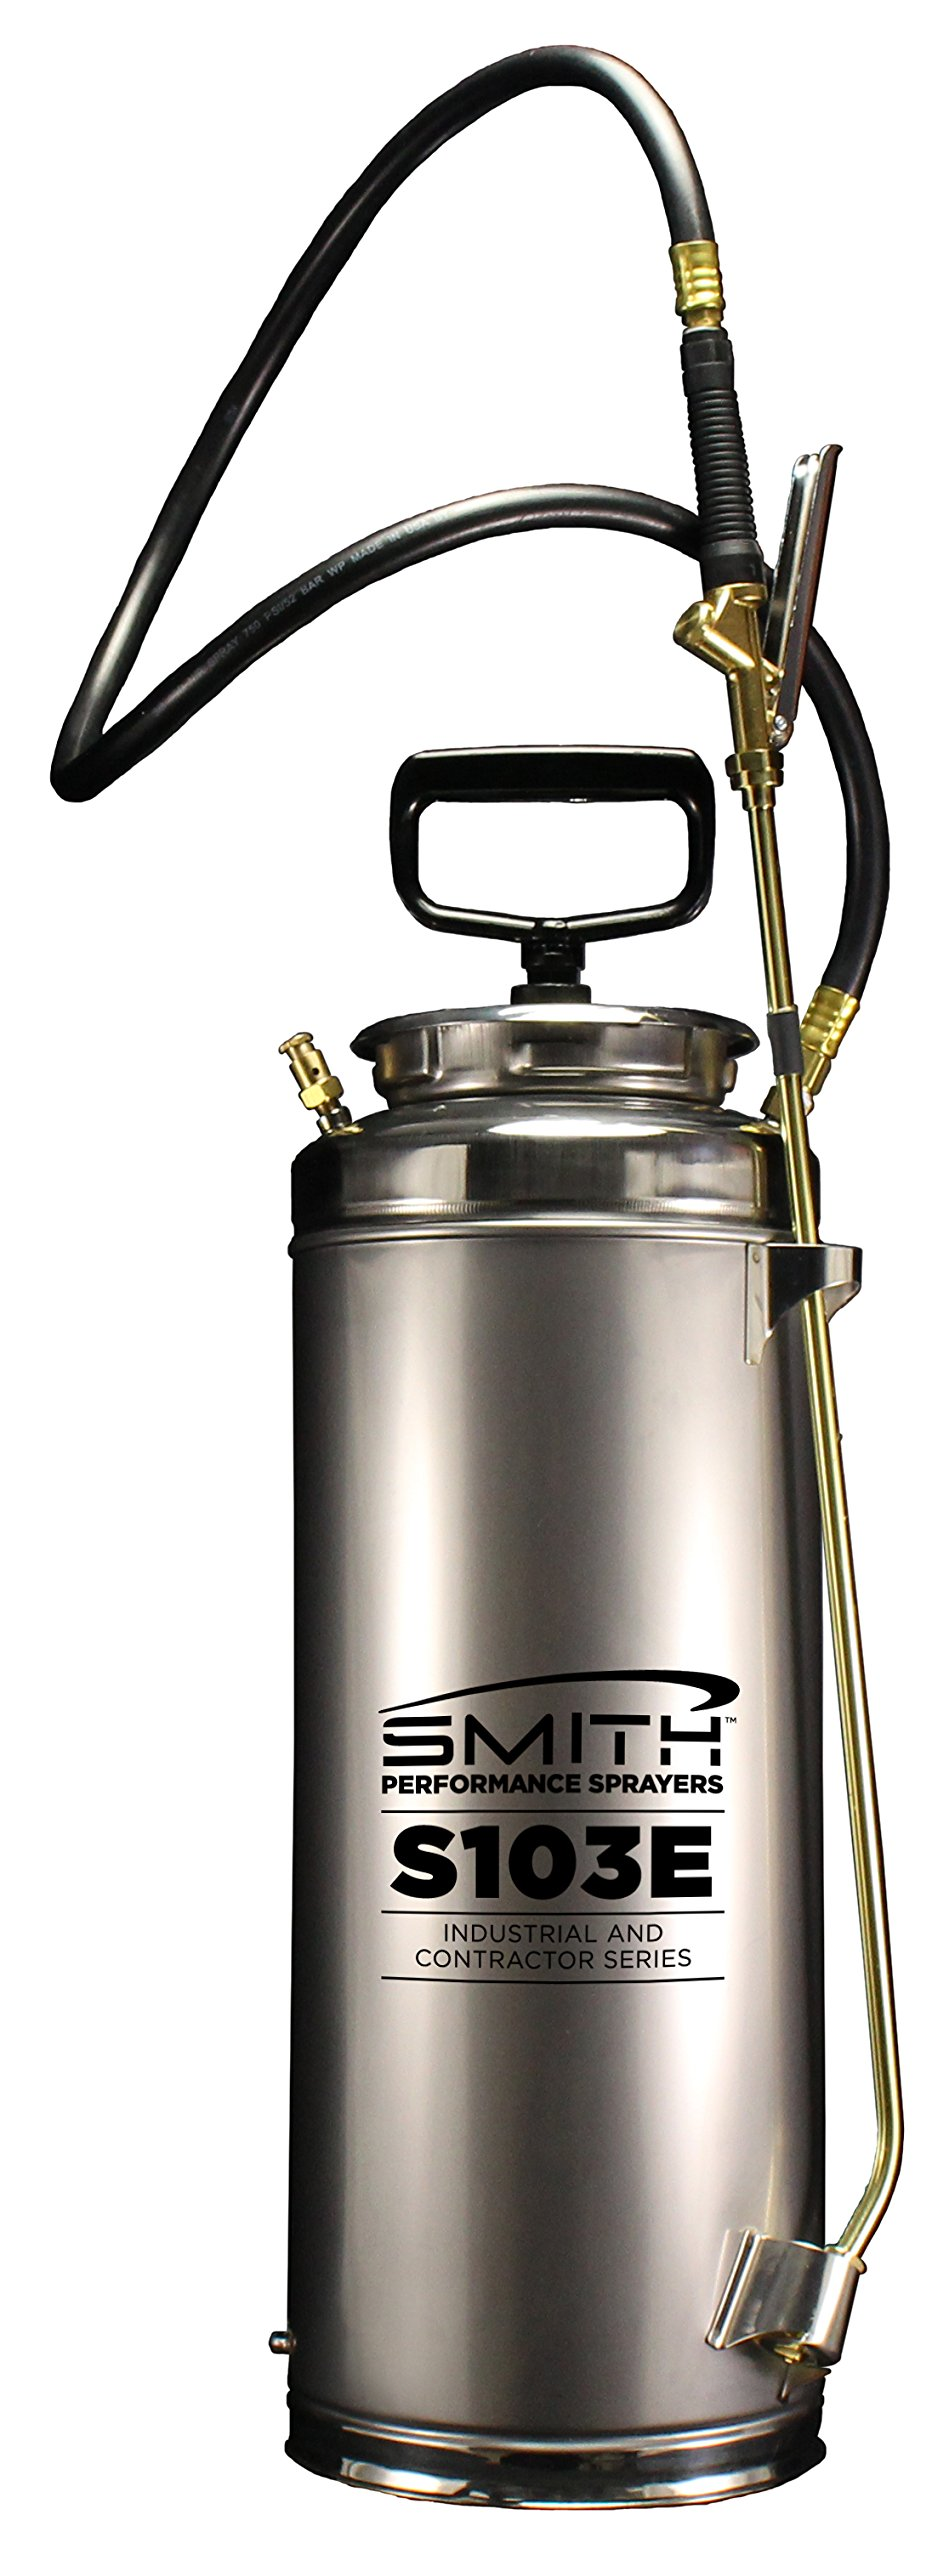 Smith Performance Sprayers 190448 Concrete Sprayer, Stainless Steel by Smith Performance Sprayers